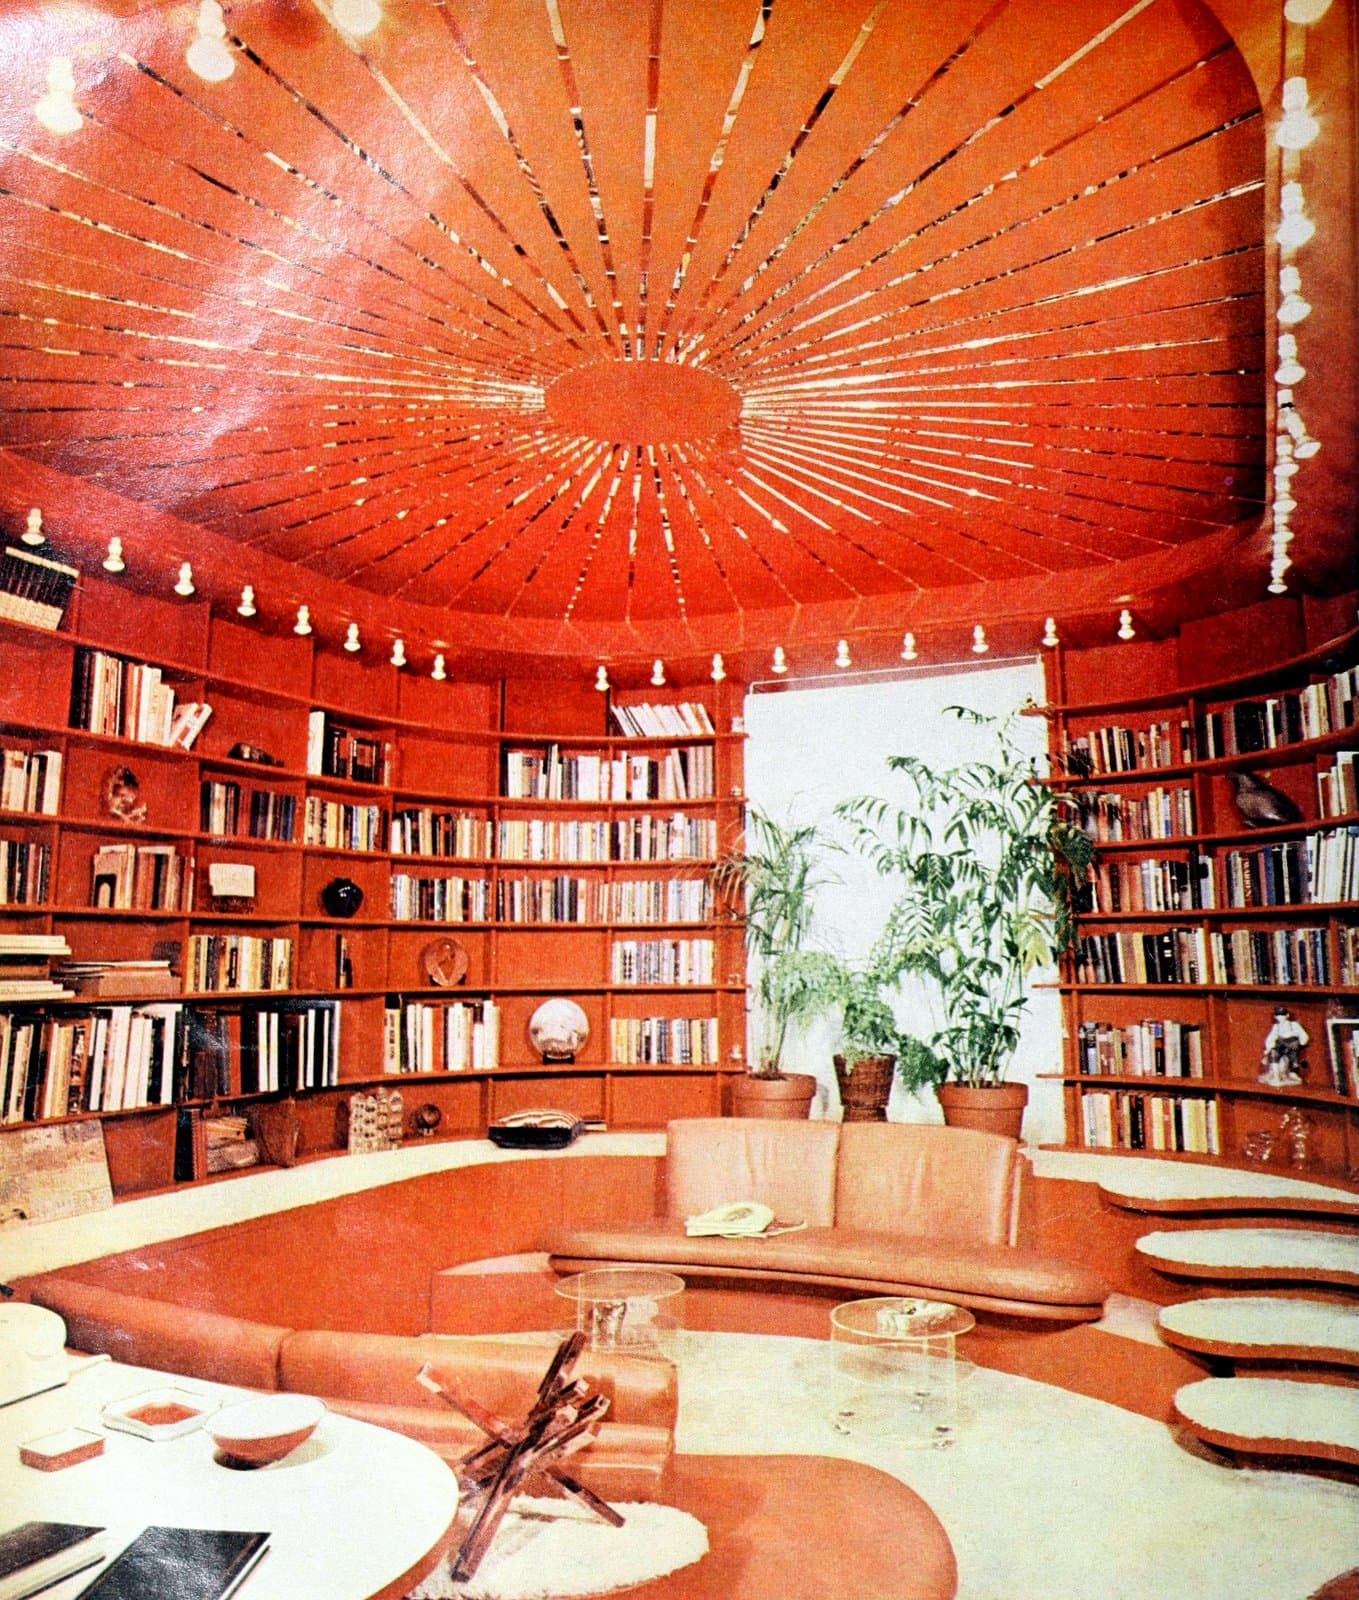 An orange oval library with built-in sunken seating area (1973)